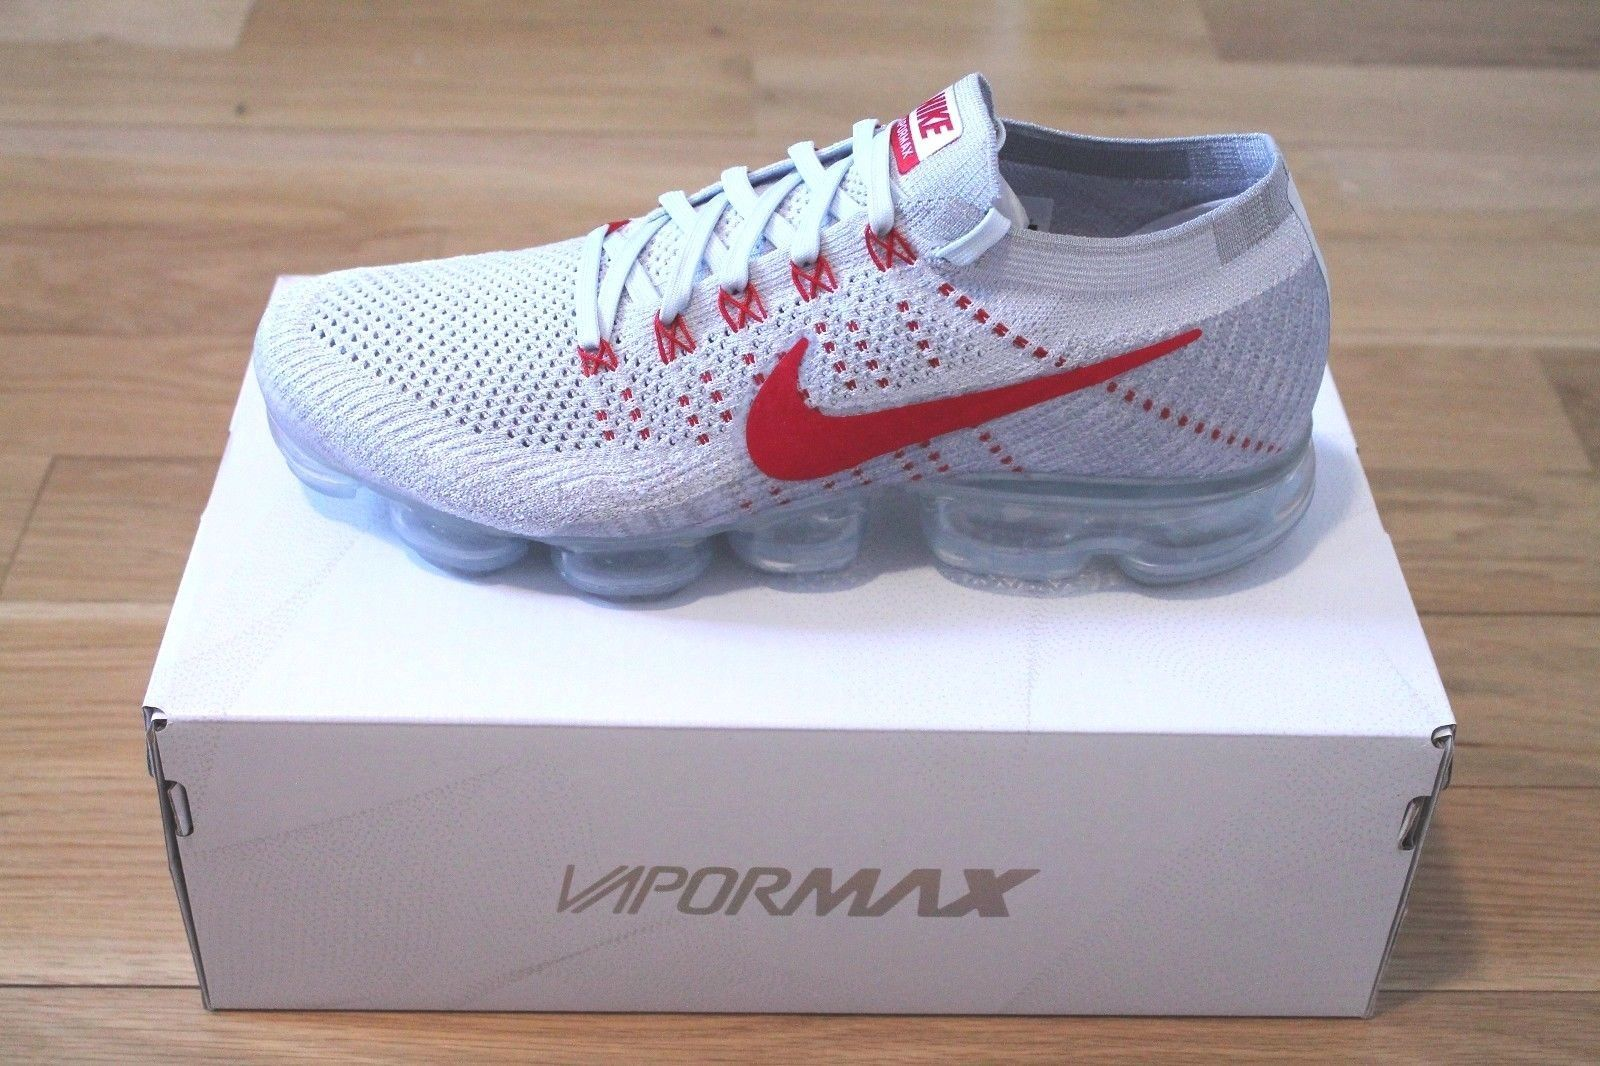 promo code 96bb9 9f0ac Nike Air VaporMax Flyknit  Pure Platinum University Red  - EU Kicks   Sneaker Magazine